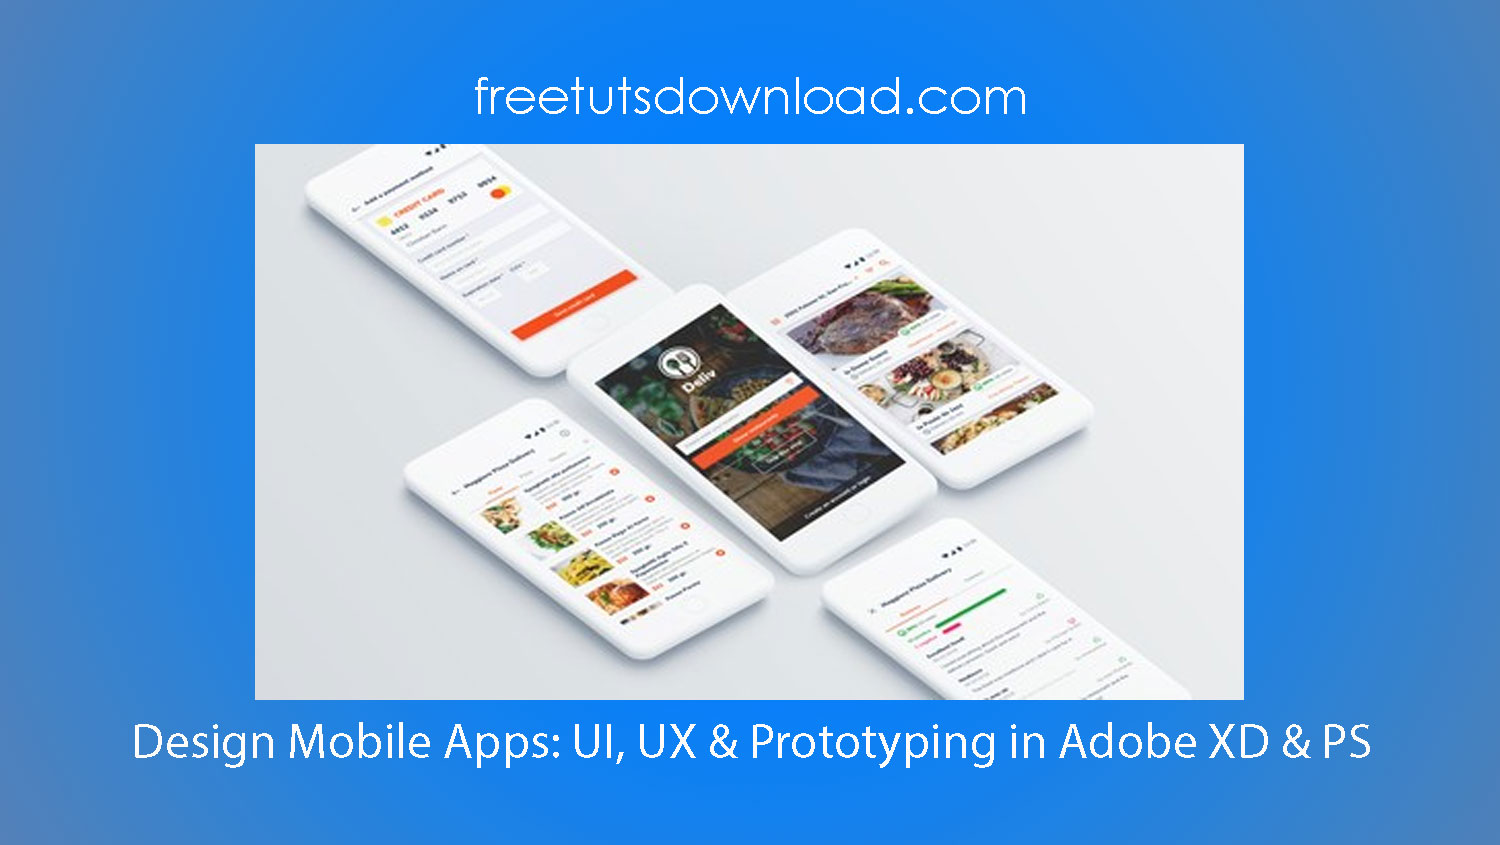 Design Mobile Apps: UI, UX & Prototyping in Adobe XD & PS